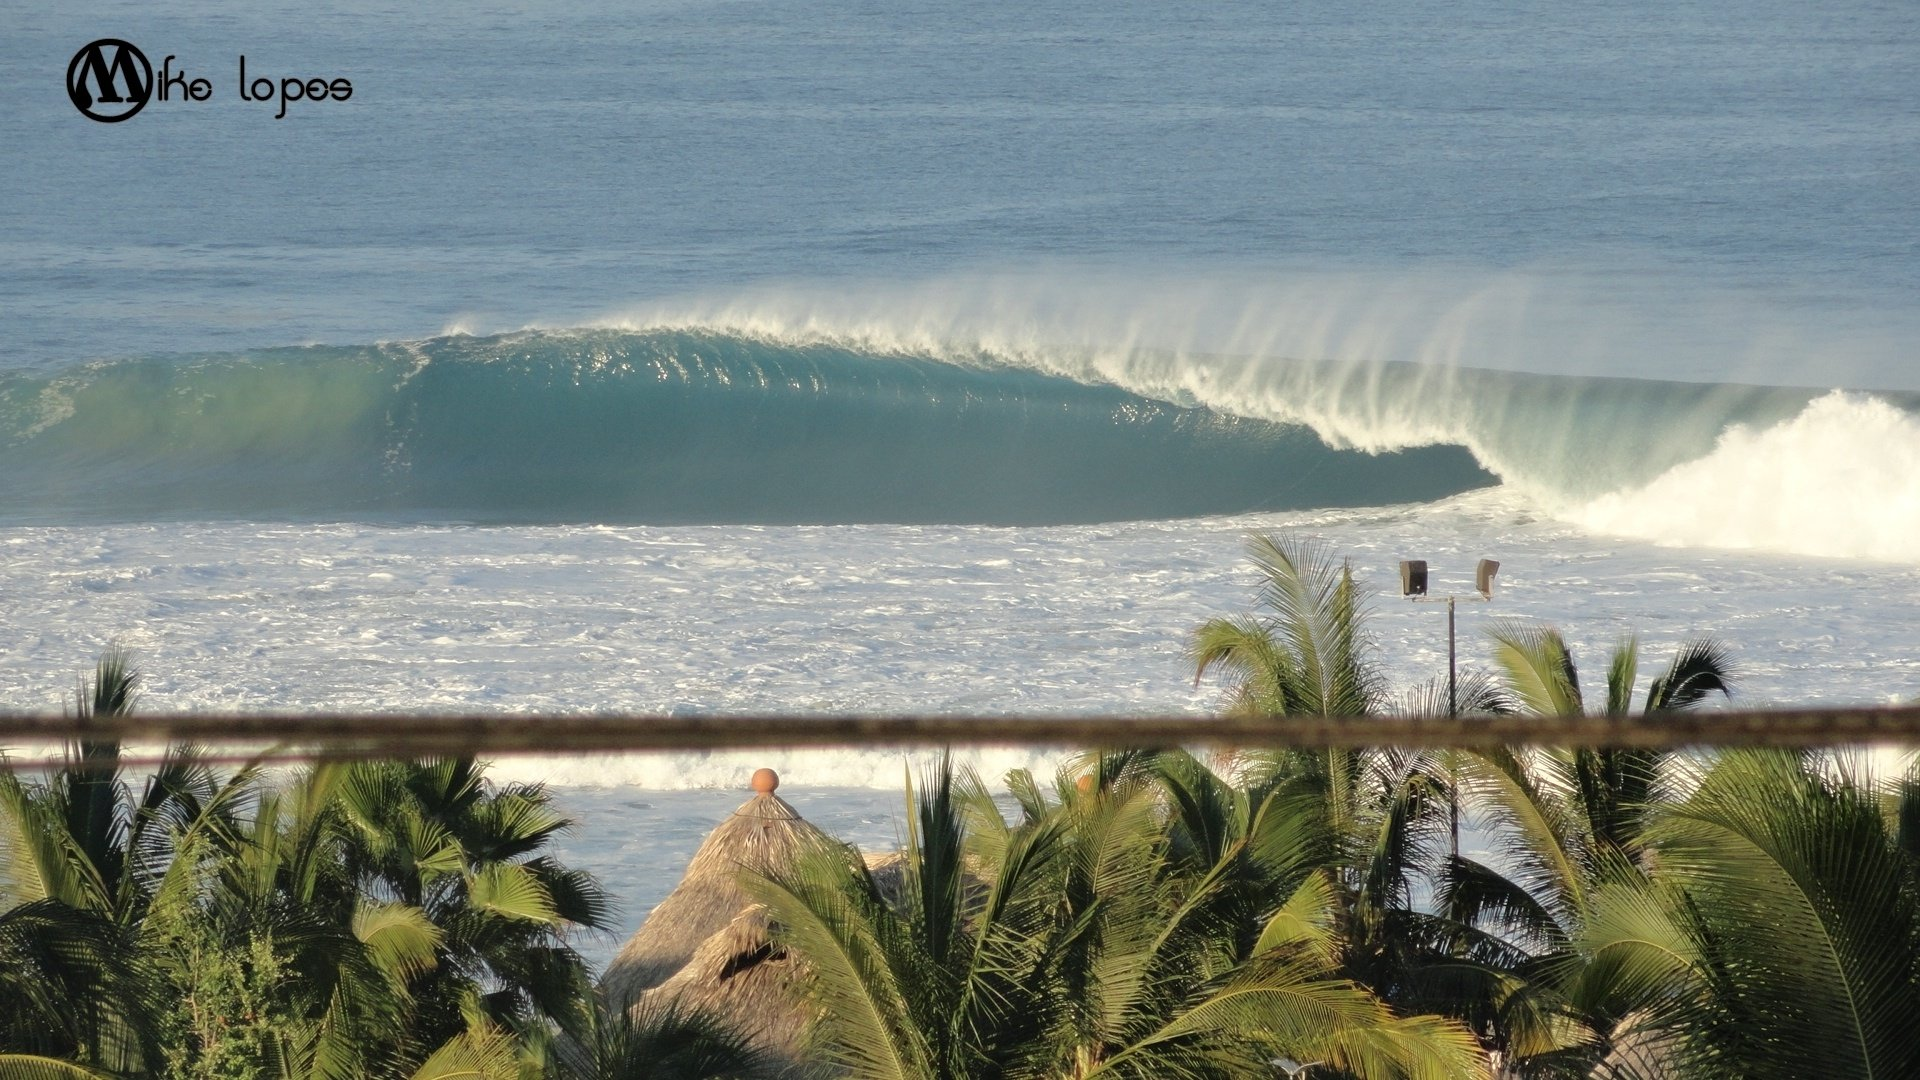 Mike Lopes's photo of La Punta - Playa Zicatela